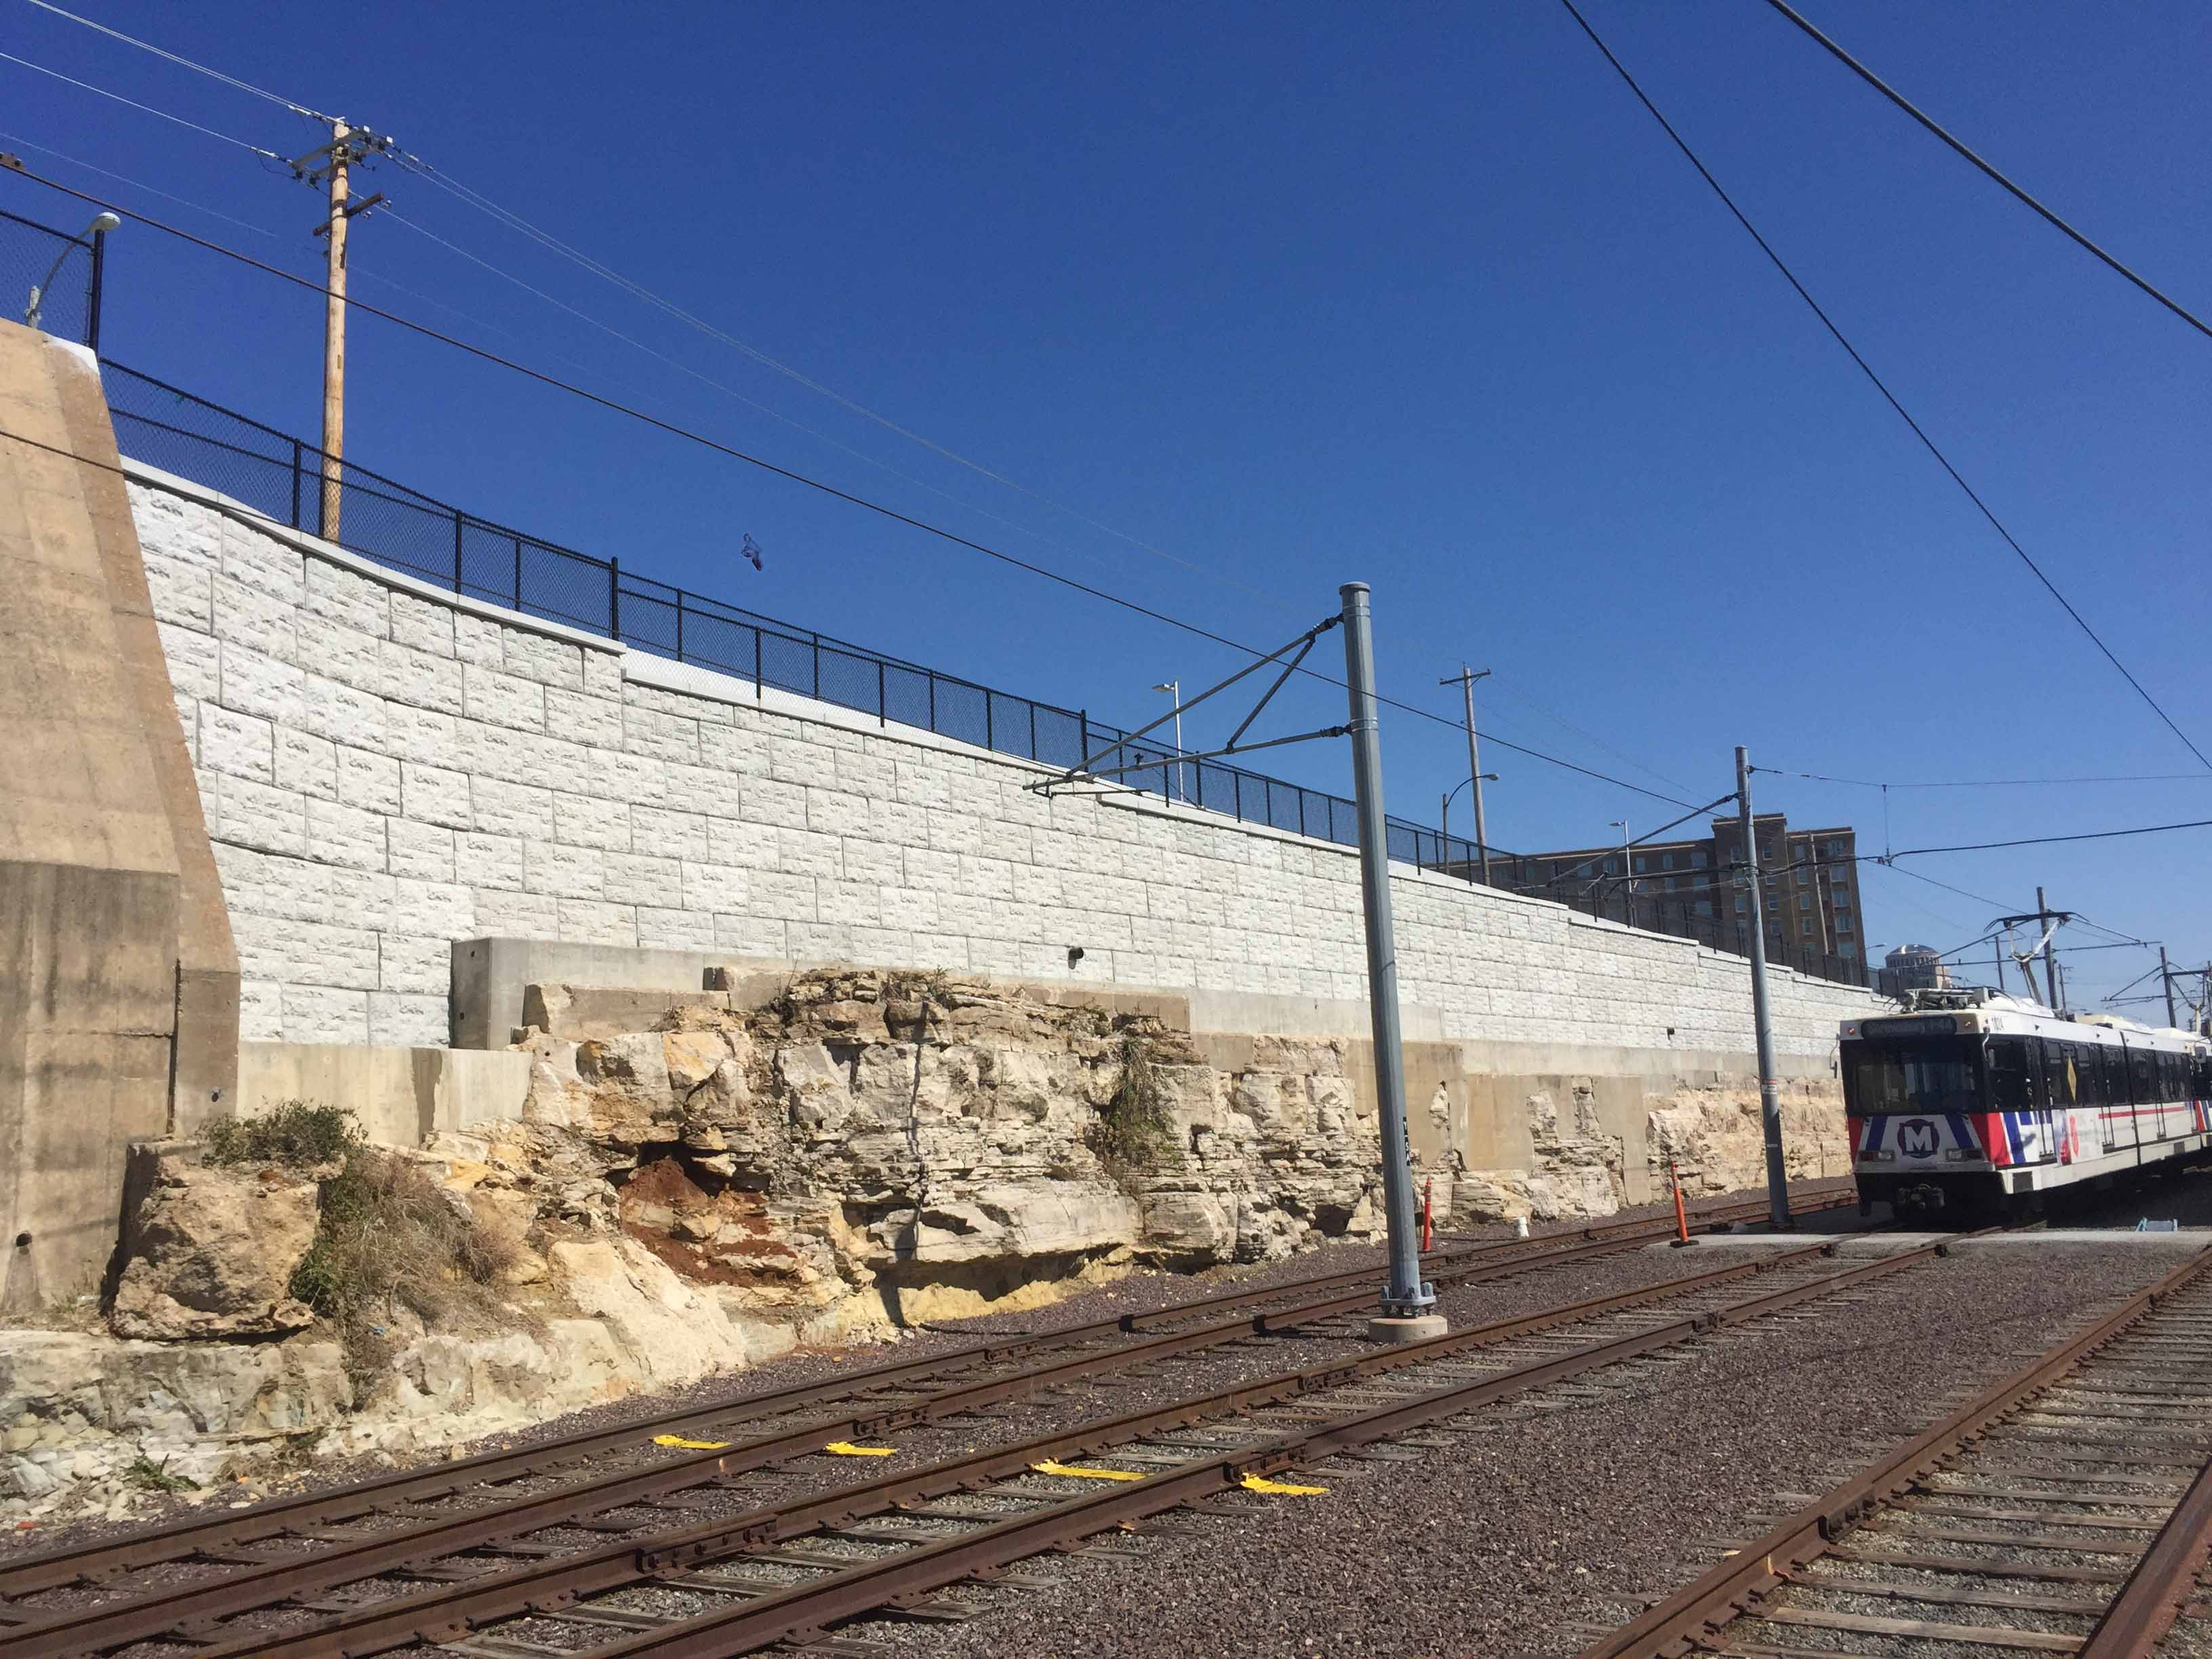 MaxumStone castle face retaining wall in st louis missouri for metro rail